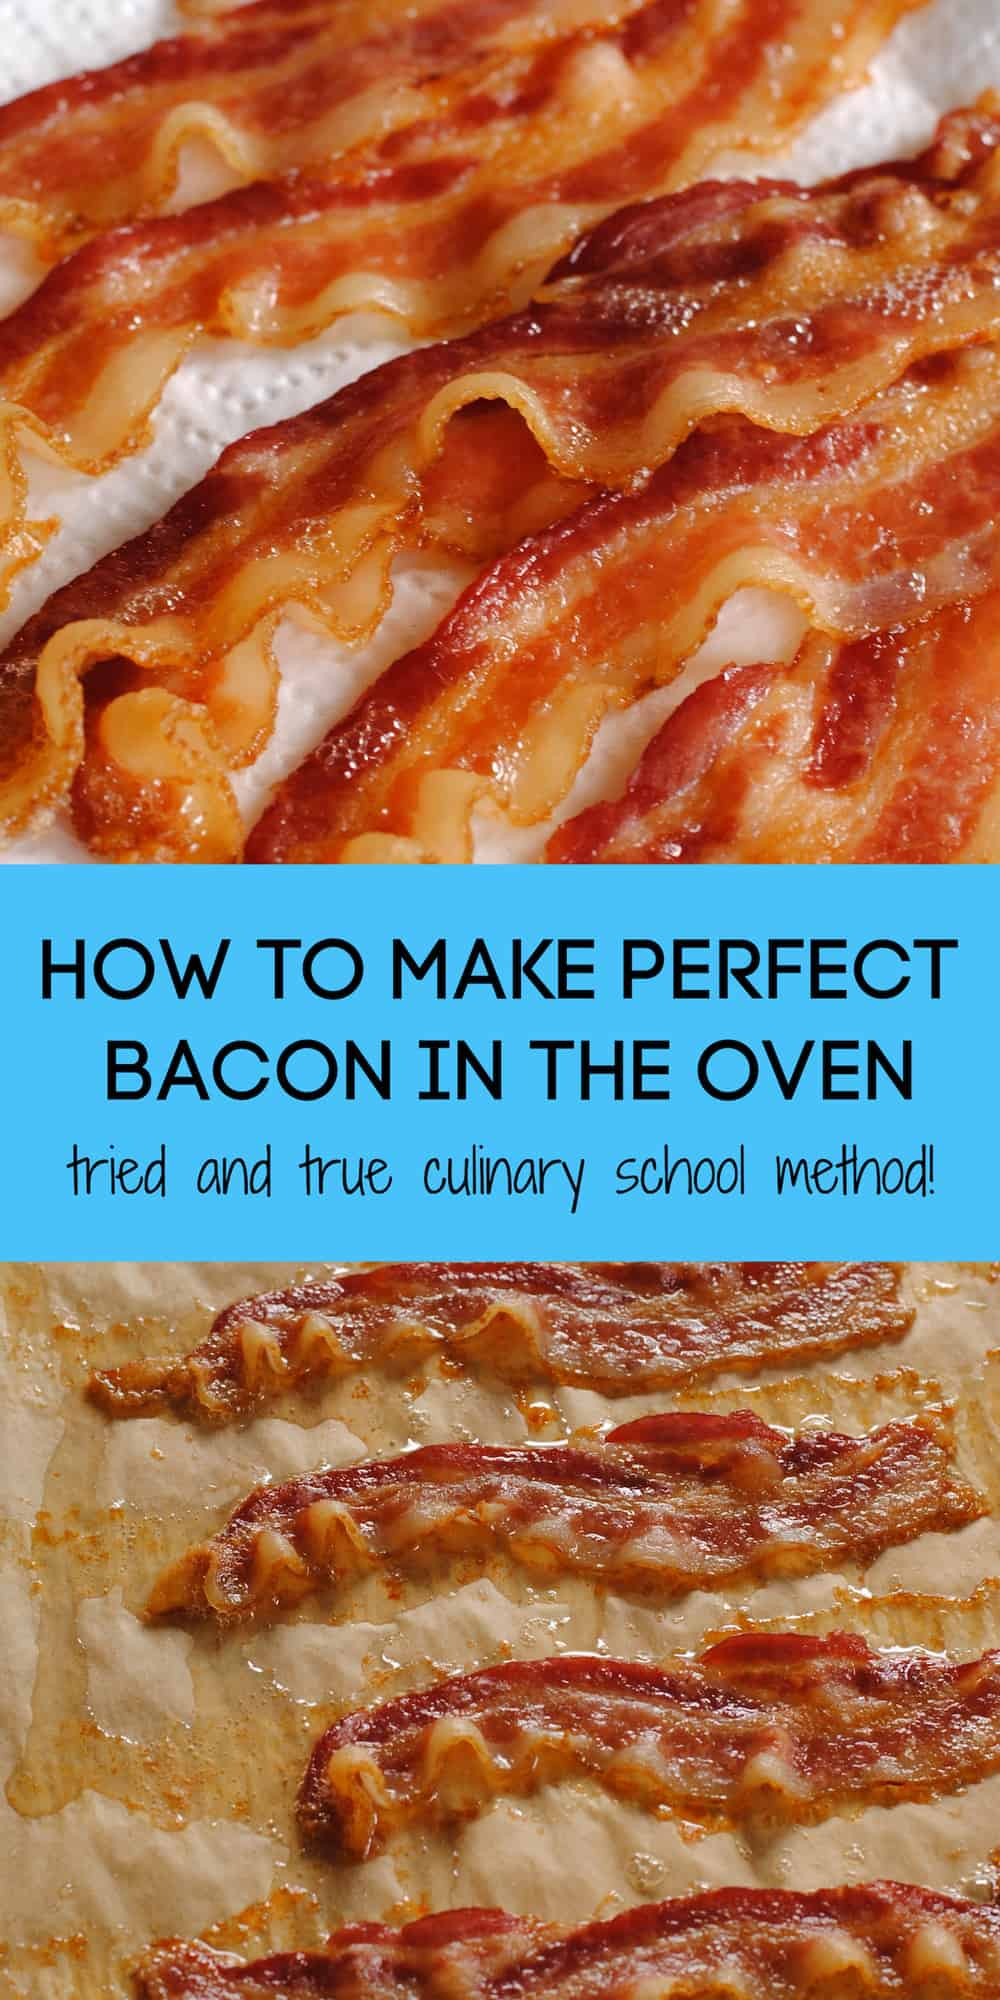 Wondering how to cook bacon in the oven? Follow this two-step culinary school technique to make perfect crispy oven bacon, every time (with no splatters of bacon grease on your stovetop!) | foxeslovelemons.com